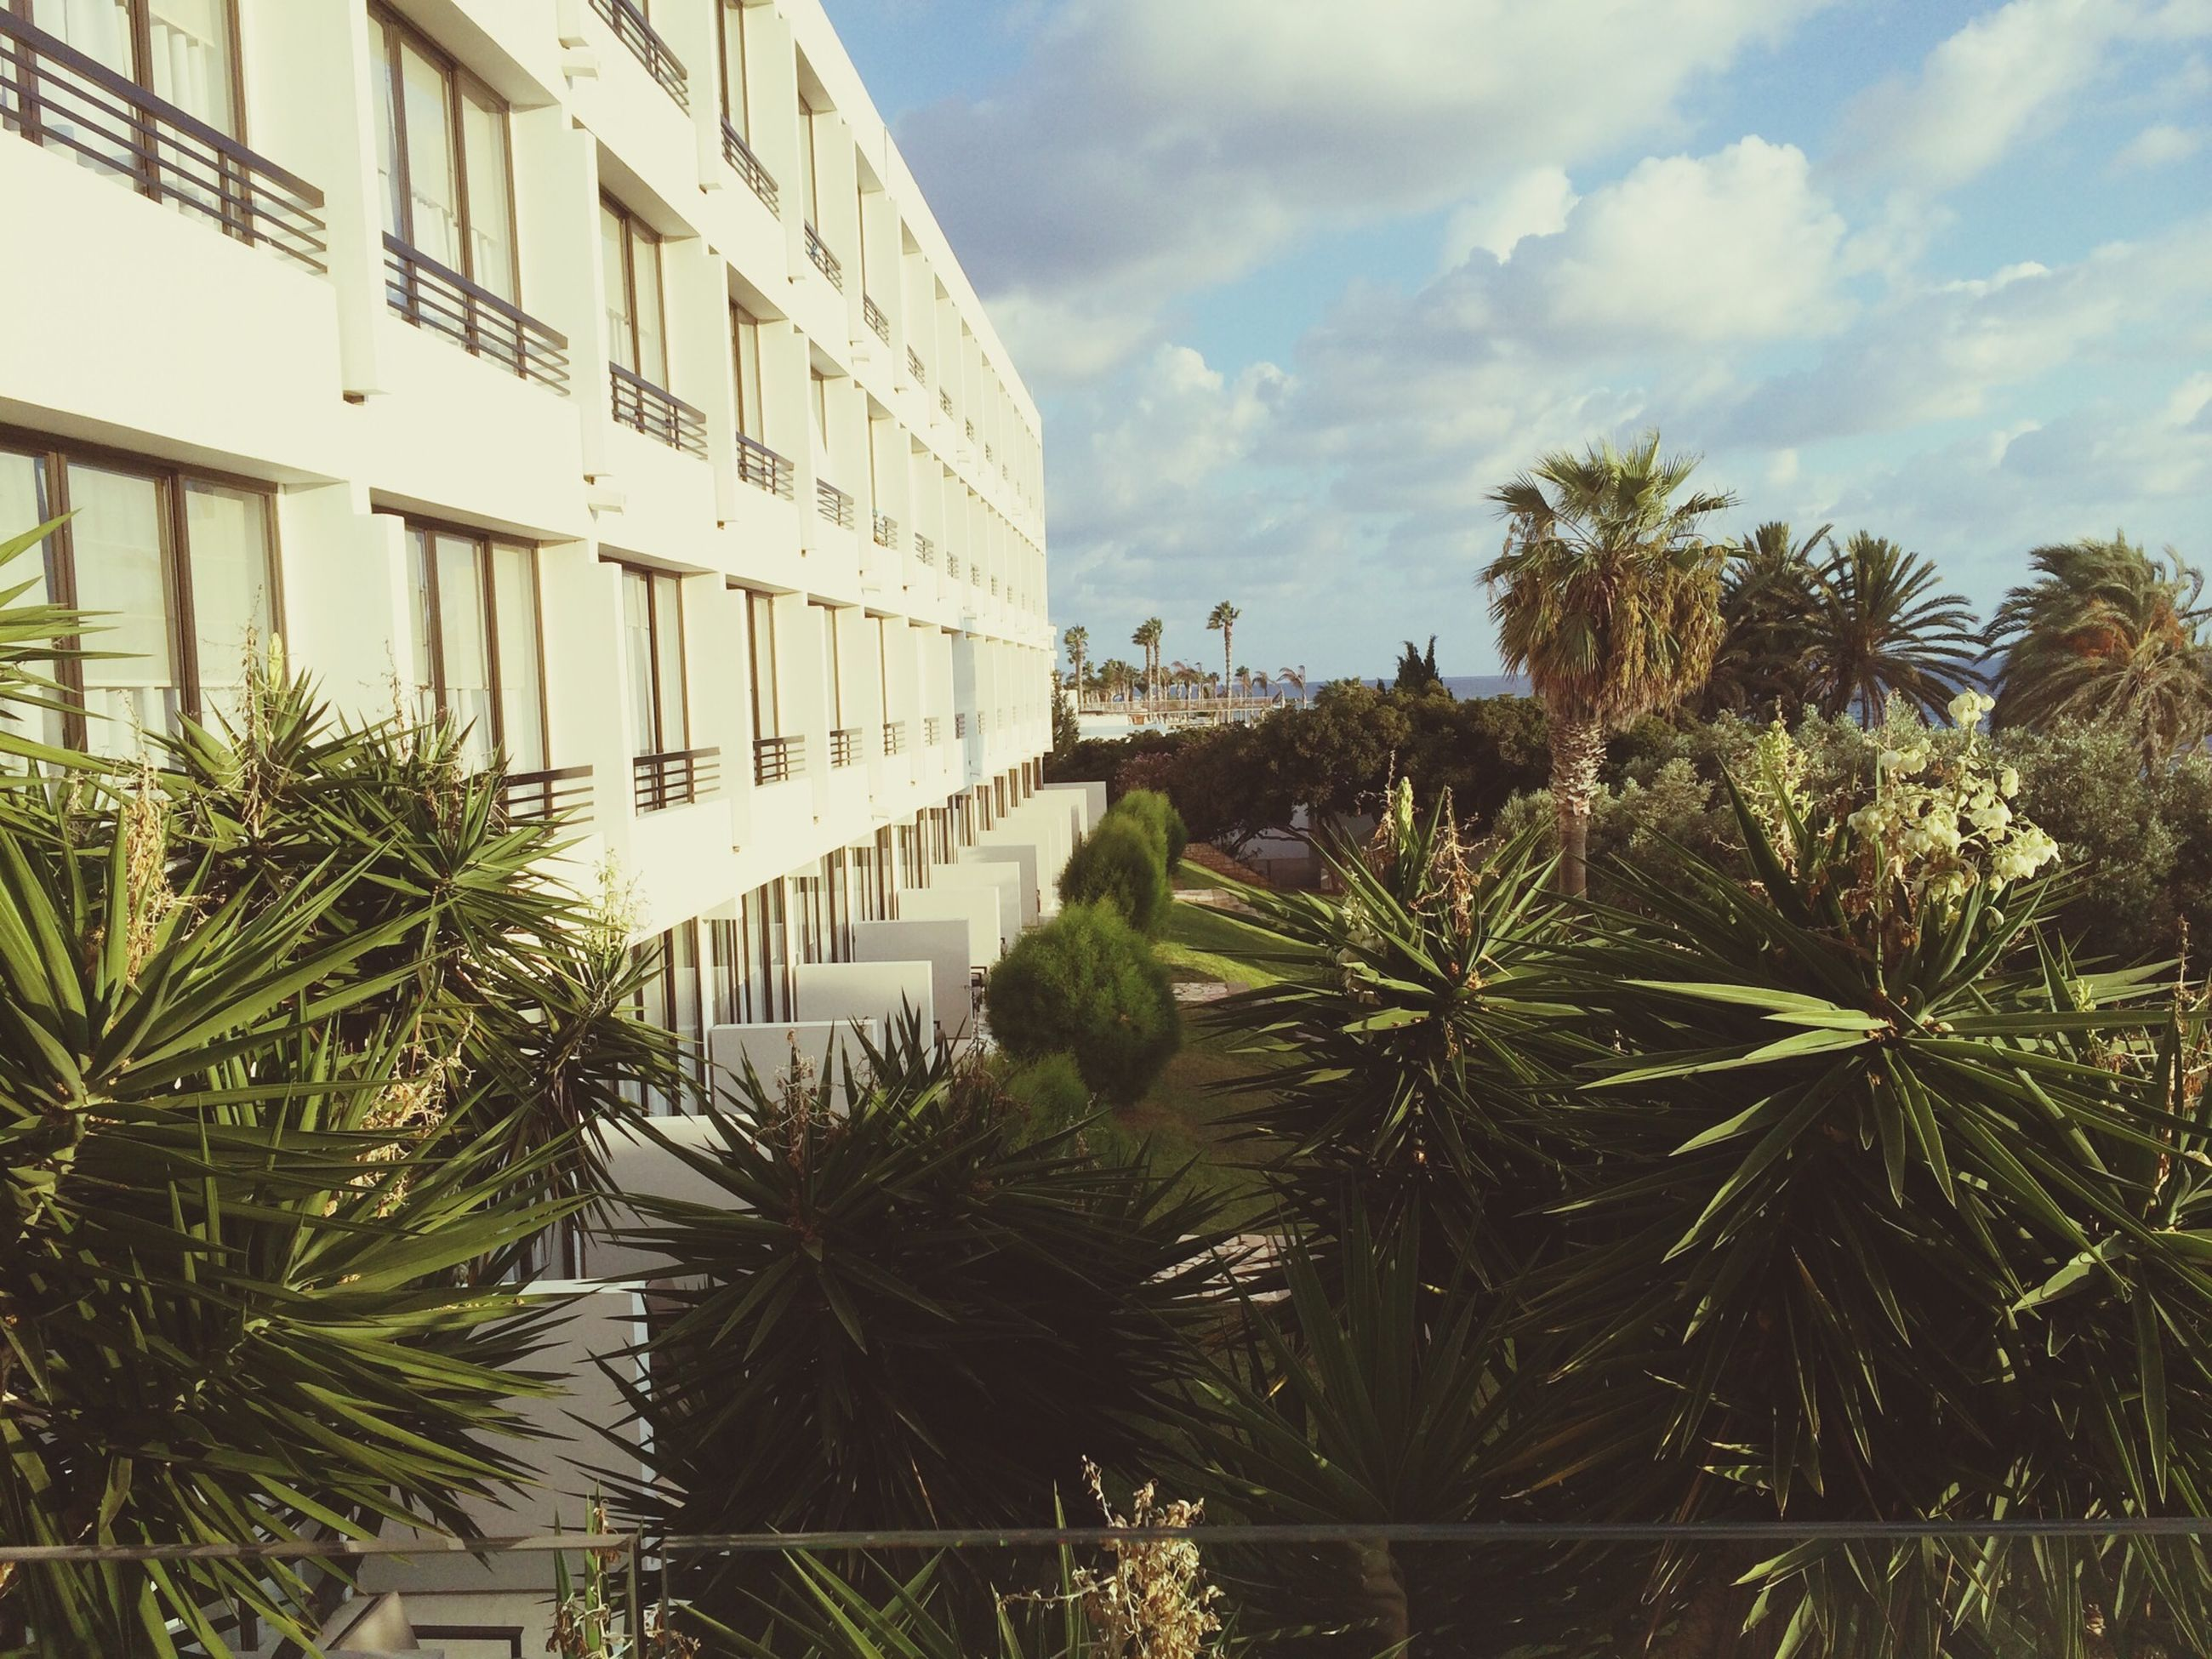 architecture, building exterior, built structure, sky, tree, palm tree, growth, plant, cloud - sky, water, cloud, building, city, day, residential building, outdoors, green color, no people, nature, low angle view